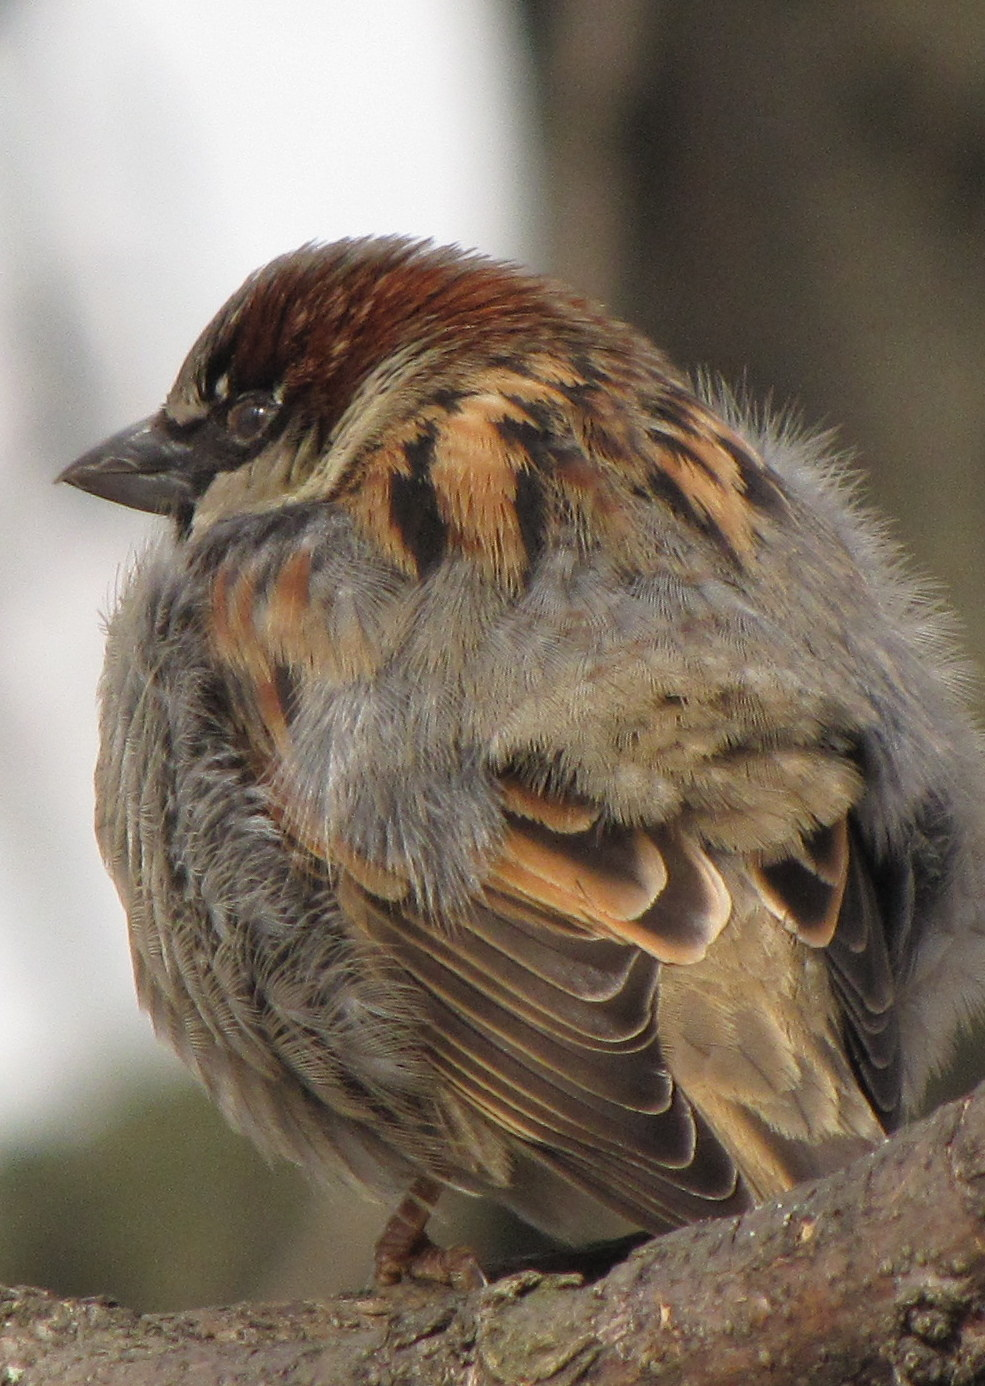 young sparrow 2